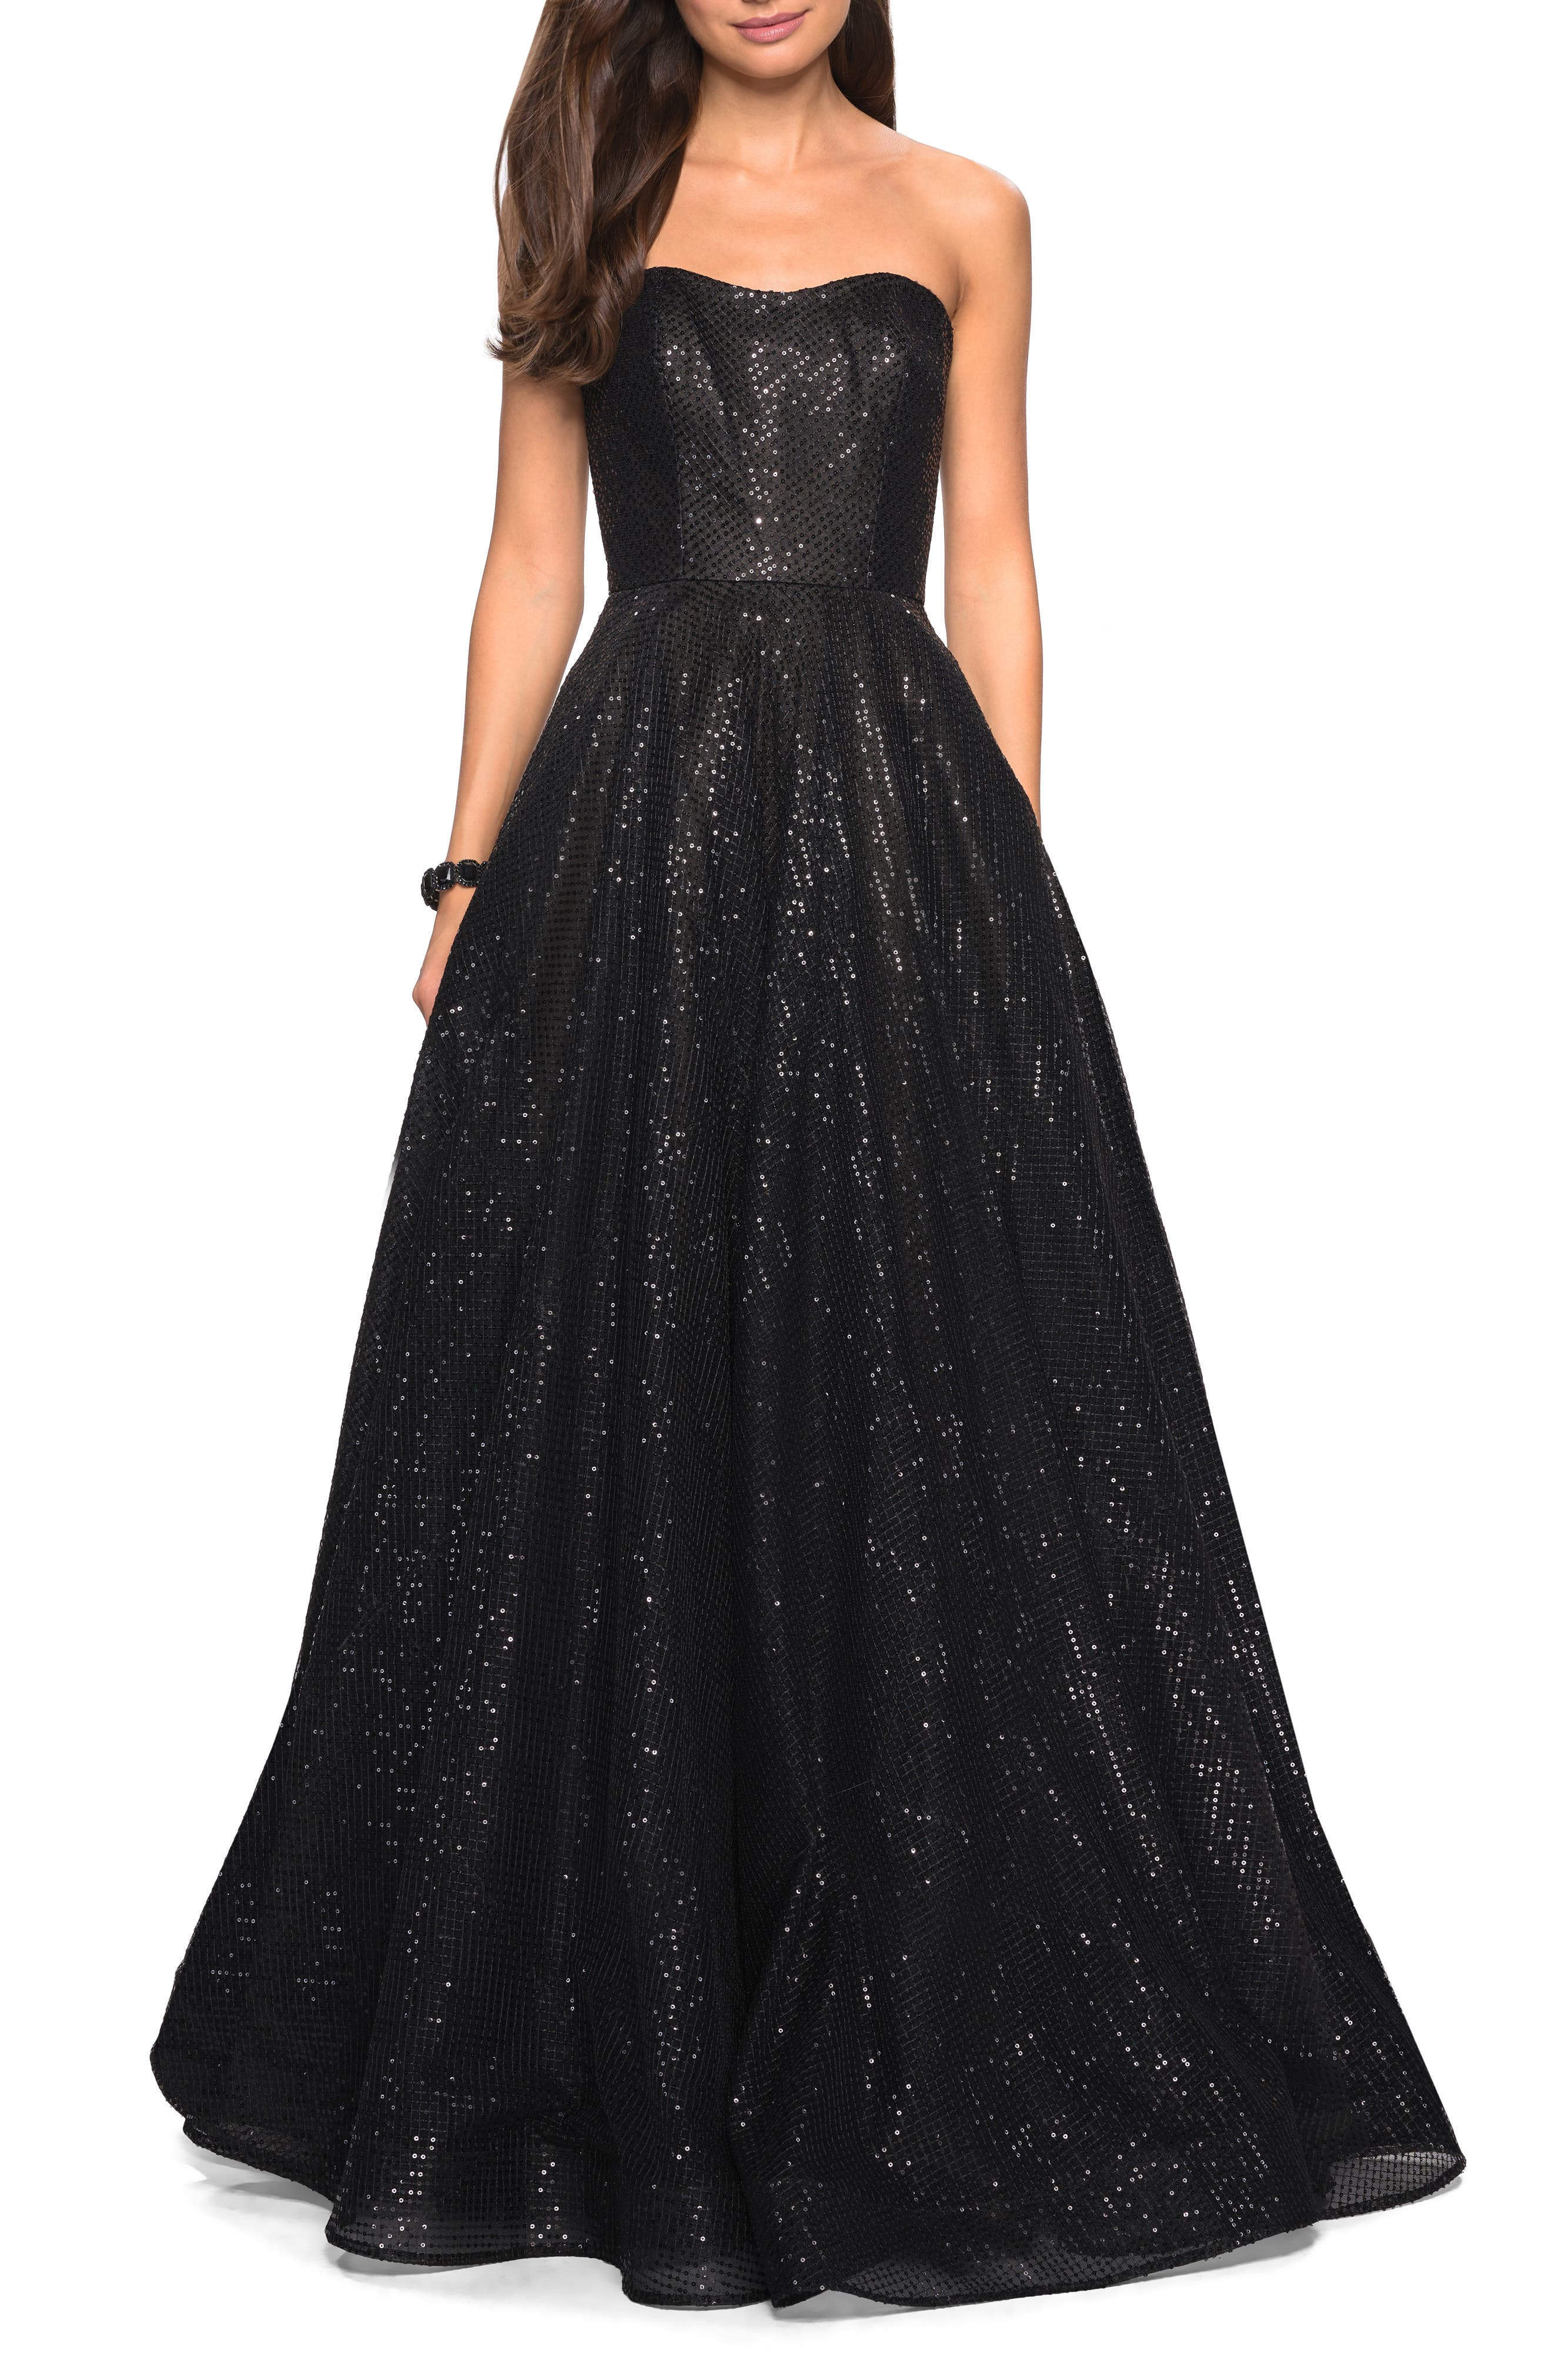 La Femme Sequin Strapless Evening Dress, Black